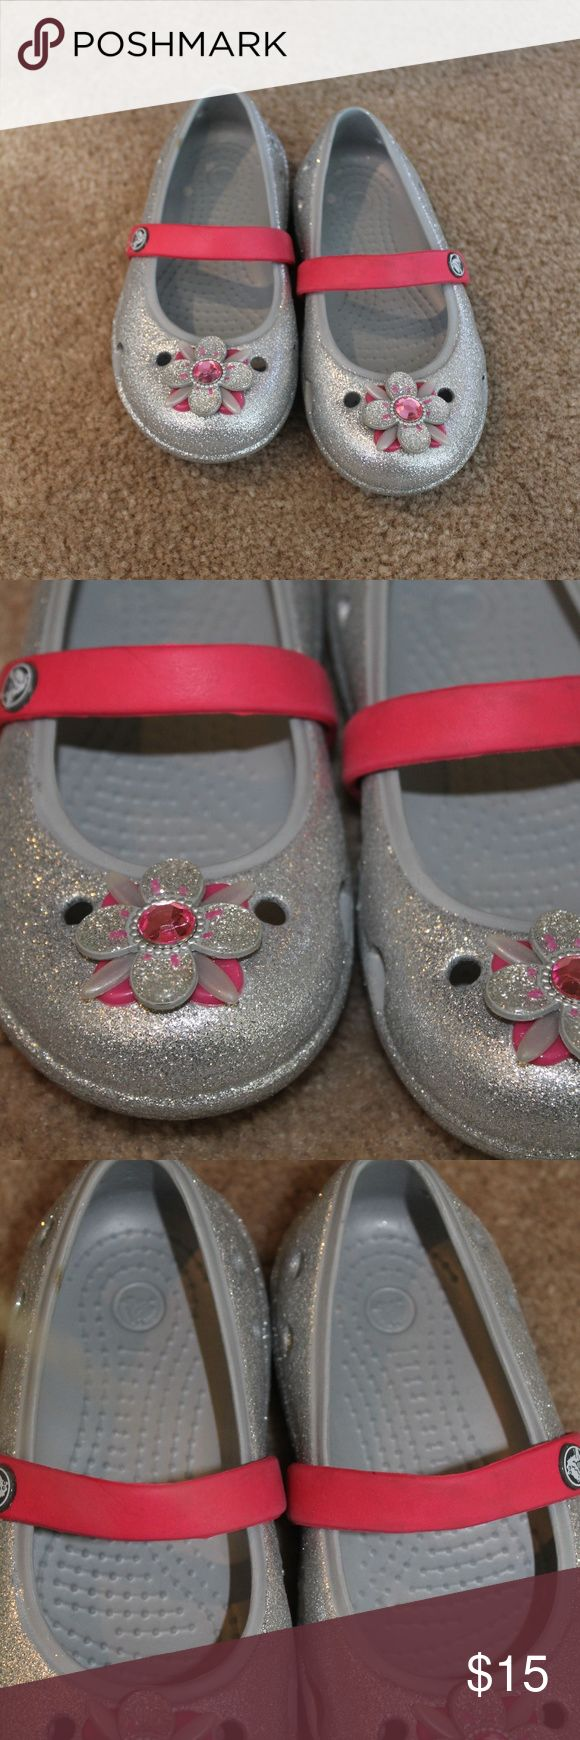 Silver Glitter Crocs for Toddler Girl Sz 9 EUC Crocs with Glitter and Flowers for Toddler Girl Sz. 9 Worn Once CROCS Shoes